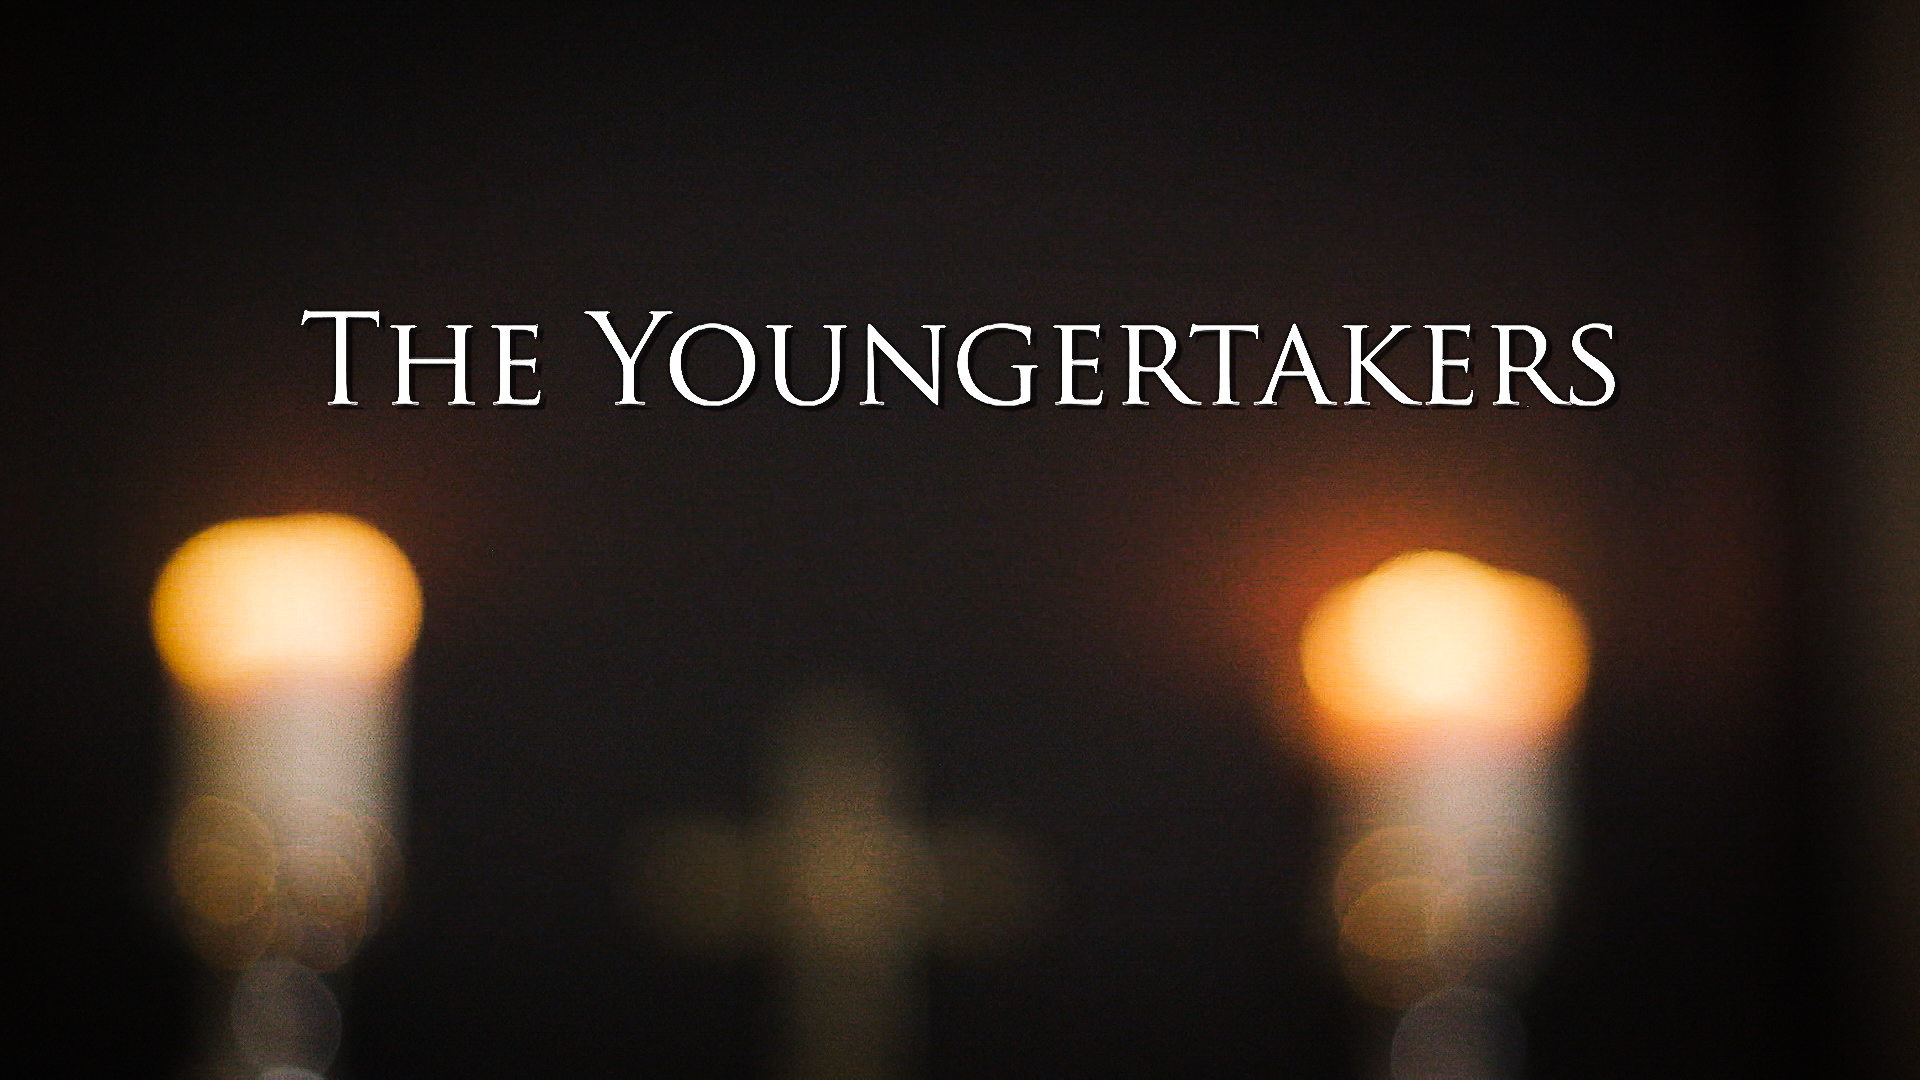 YOUNGERTAKERS GRABS WITH 15 CONTRAST-19.jpg